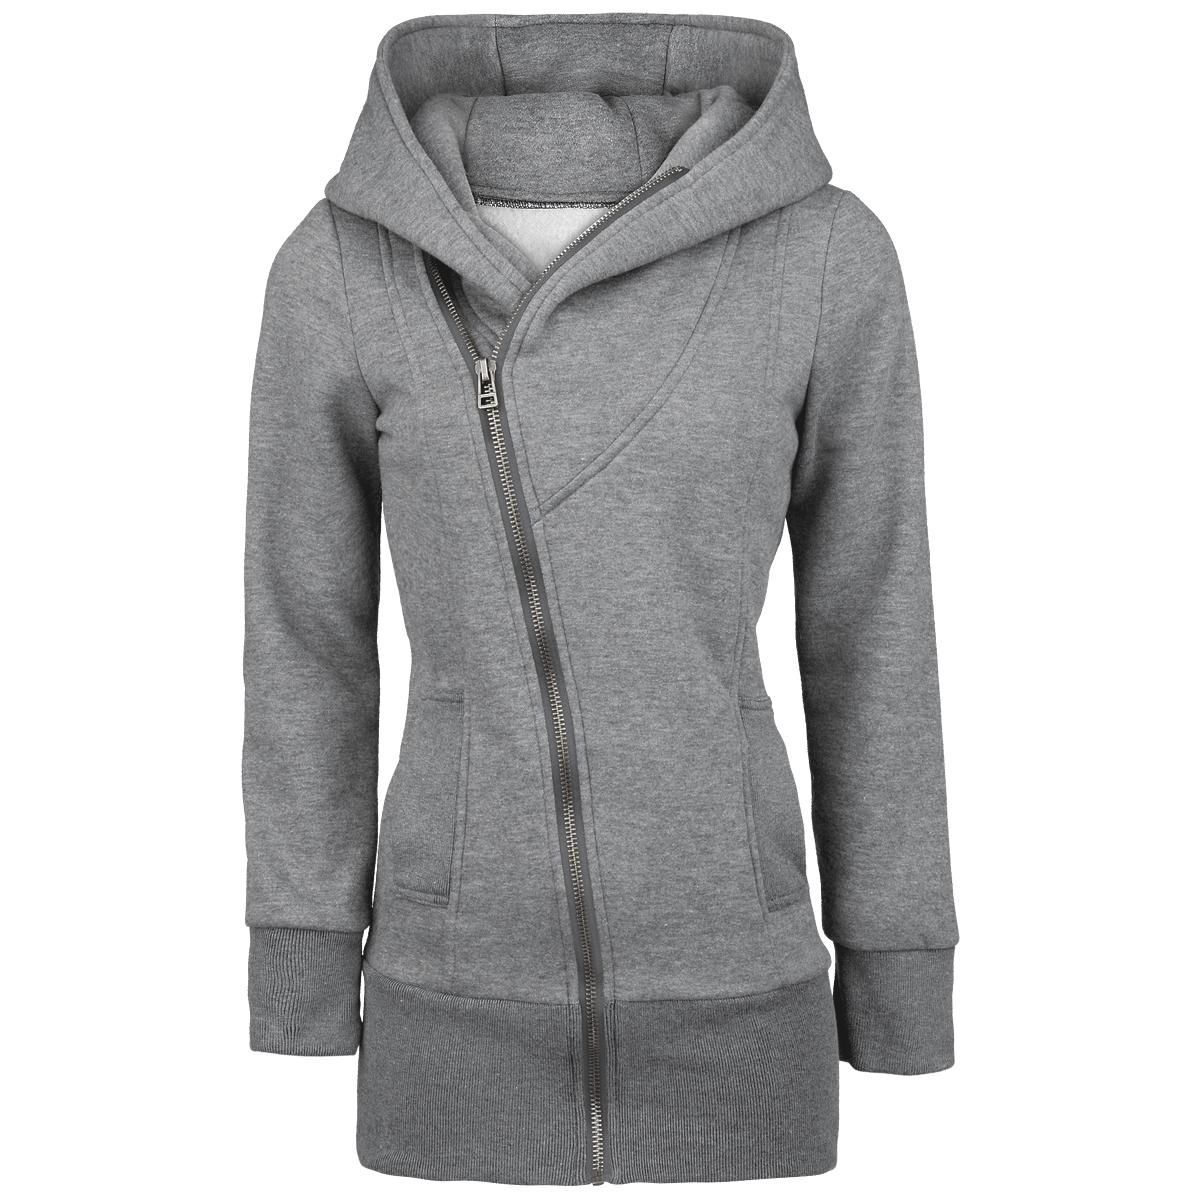 Extra Long Hooded Zip With Asymmetrical Zipper Broed